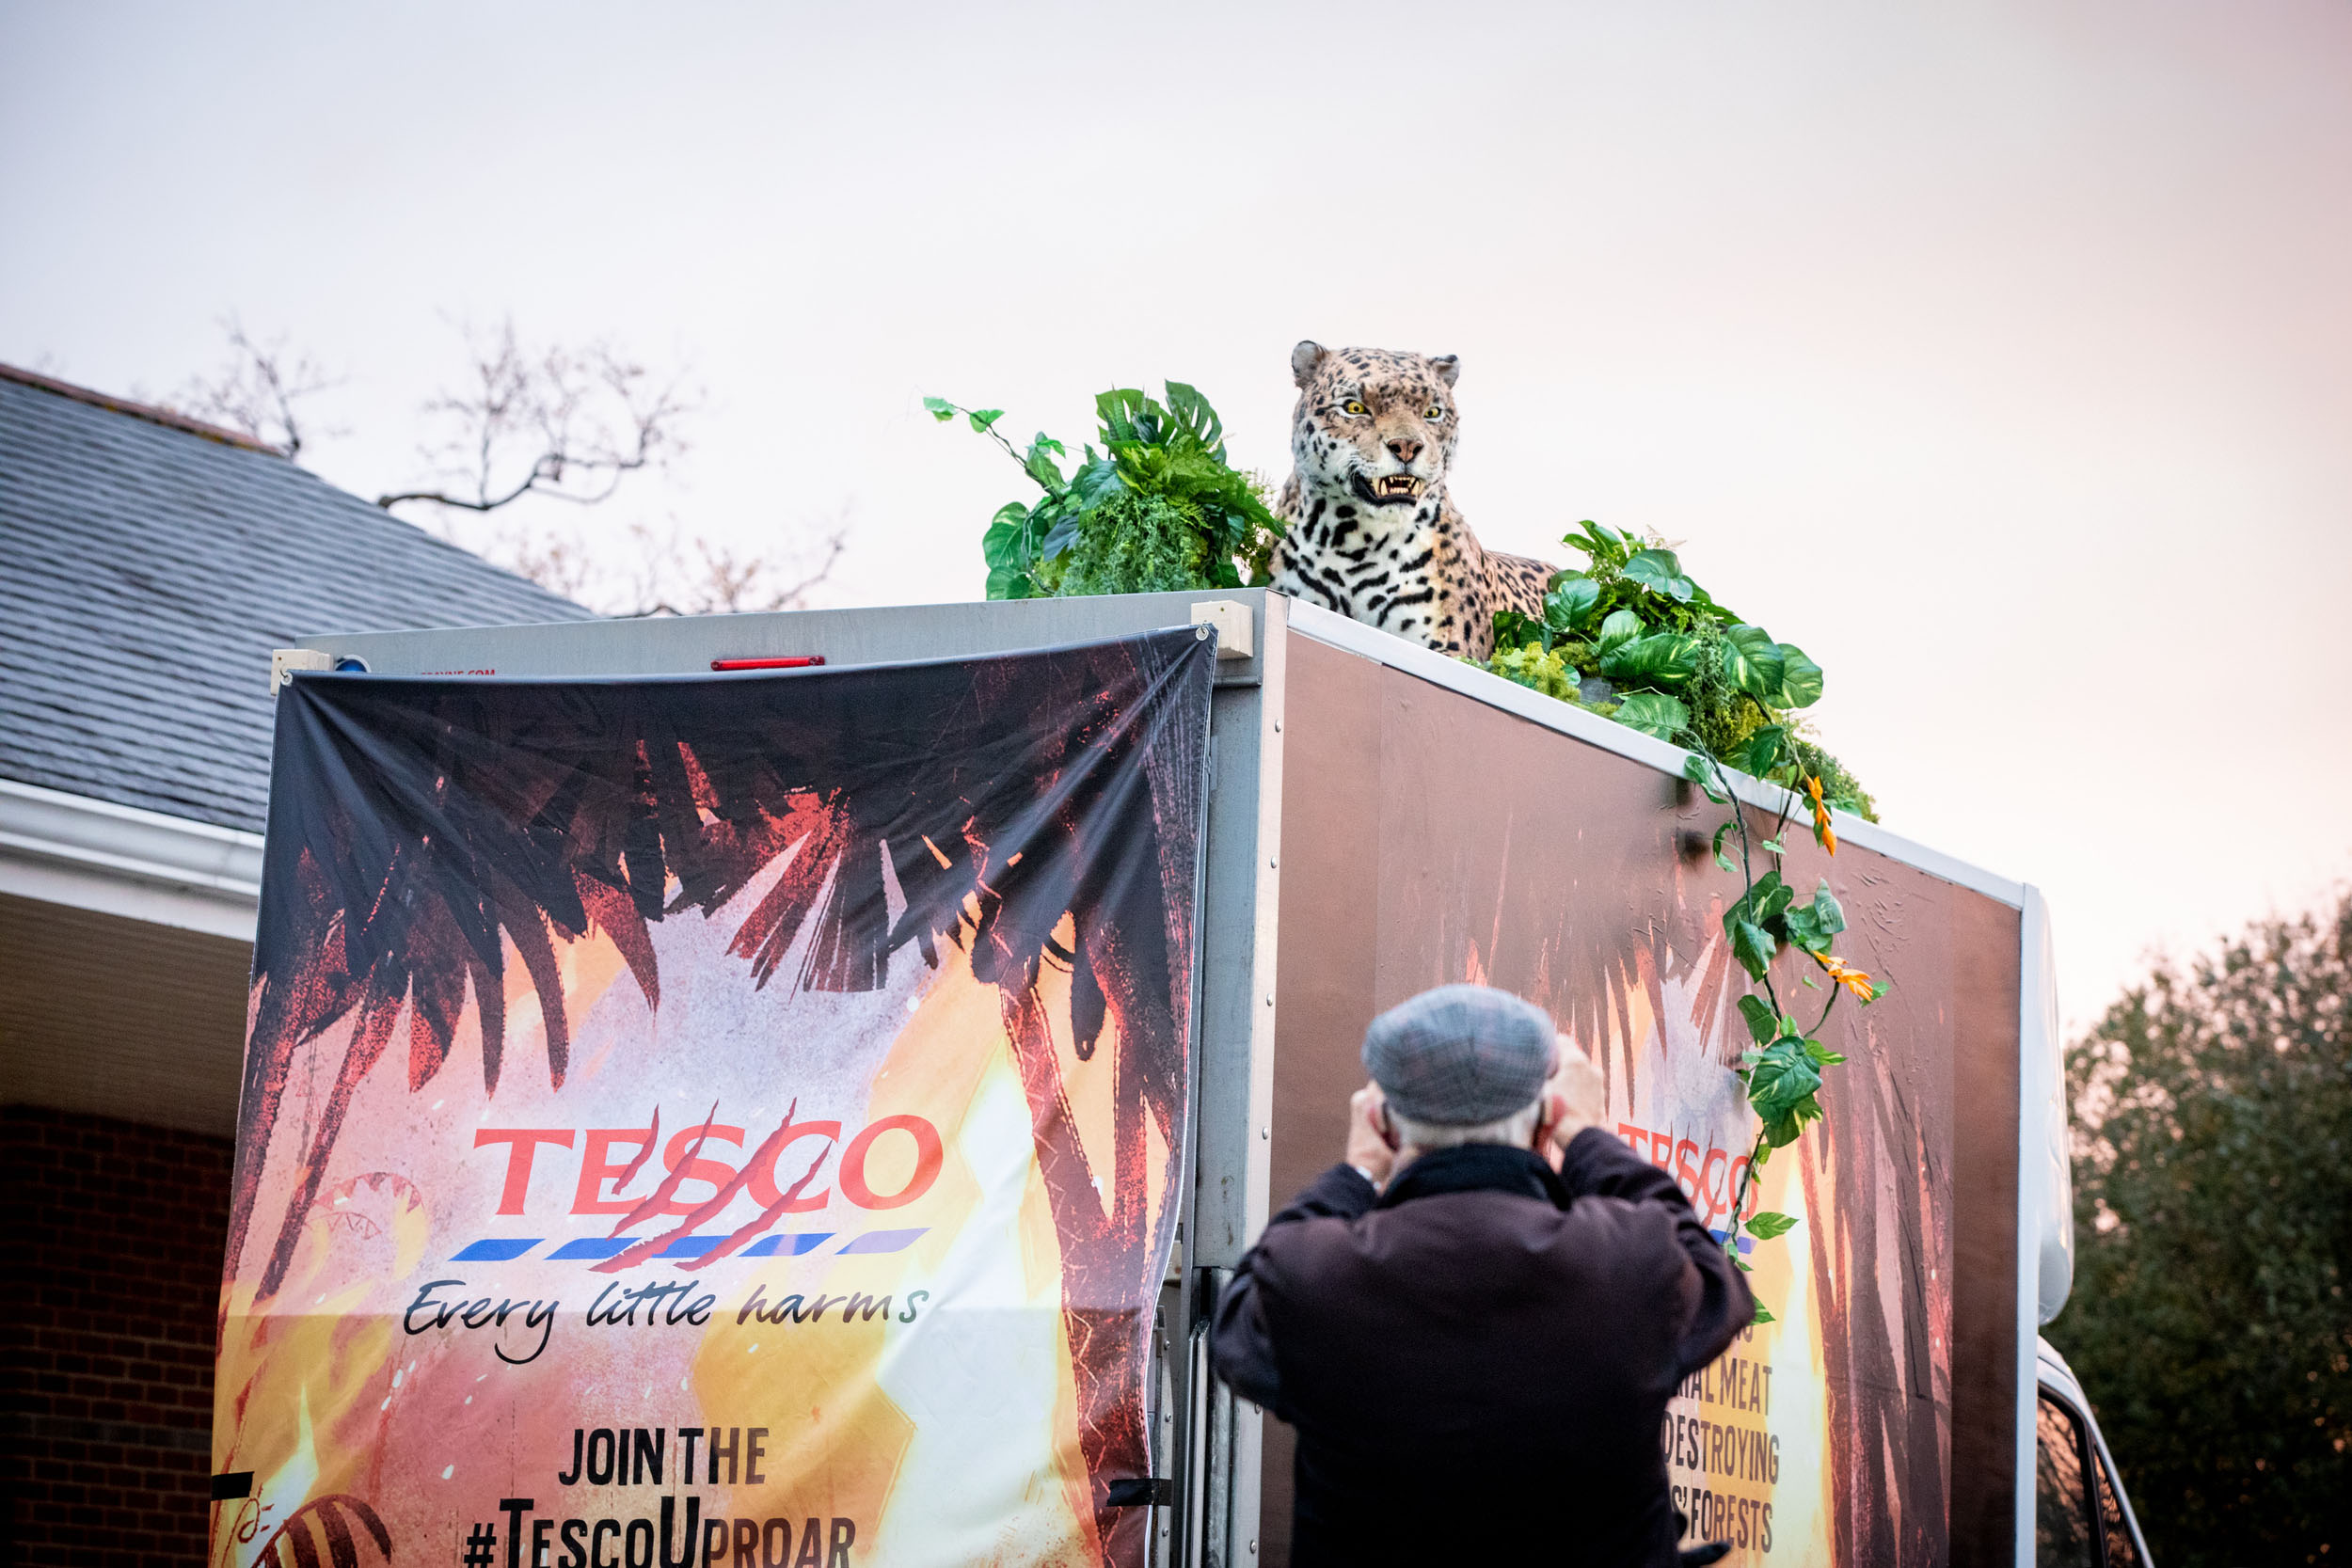 A life-size animatronic jaguar, roaring from the roof of what appears to be a Tesco delivery van, greets staff and customers at a Tesco store in Tunbridge Wells, Woodsgate Corner, with the back of a man in a flat cap with white hair, stopping to take a photograph in the foreground.